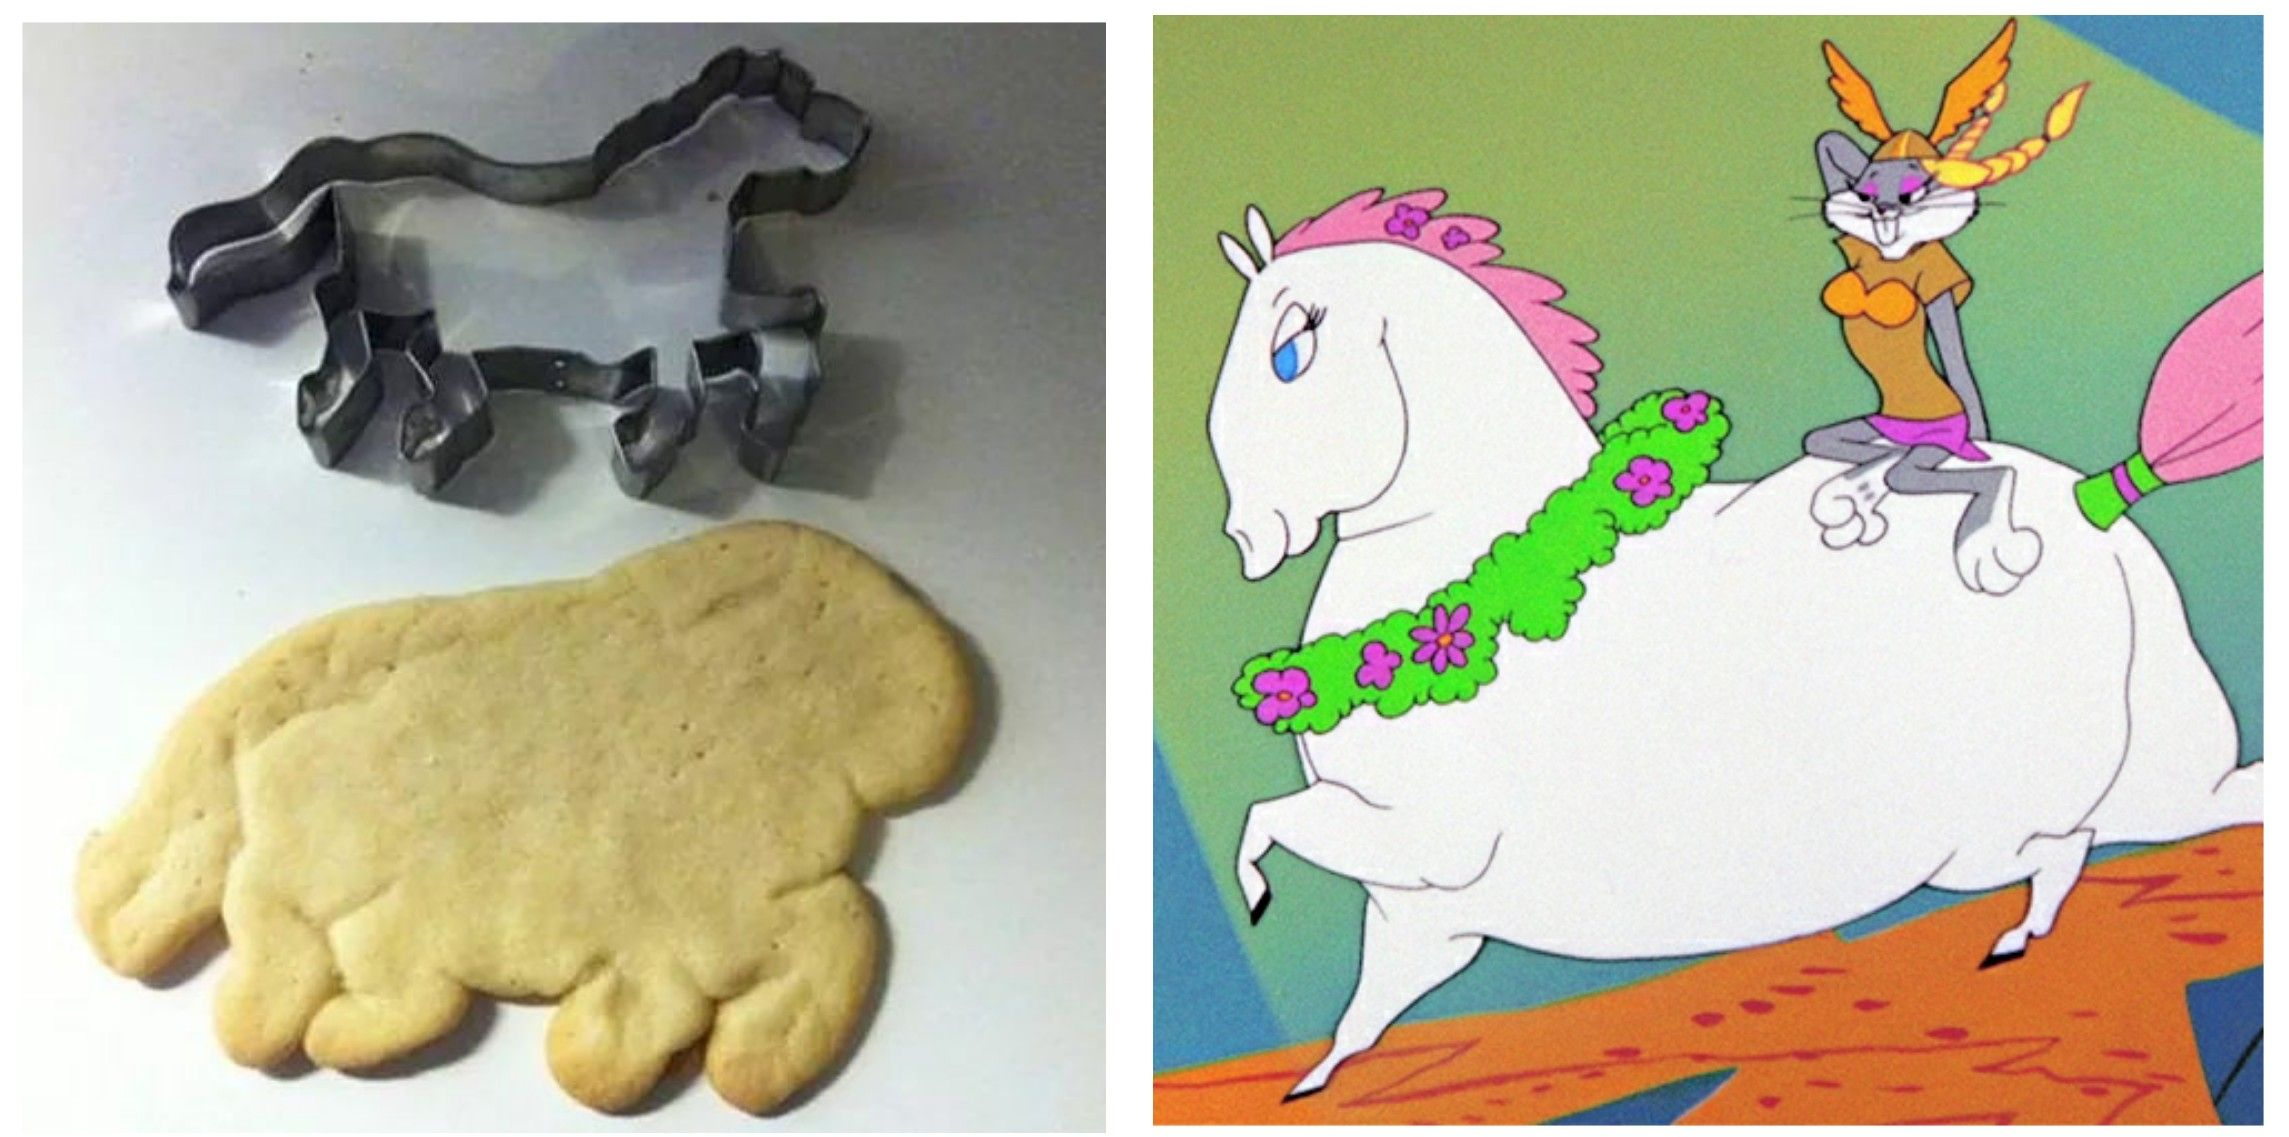 The cookies weren't made wrong, they just had an alternate inspiration